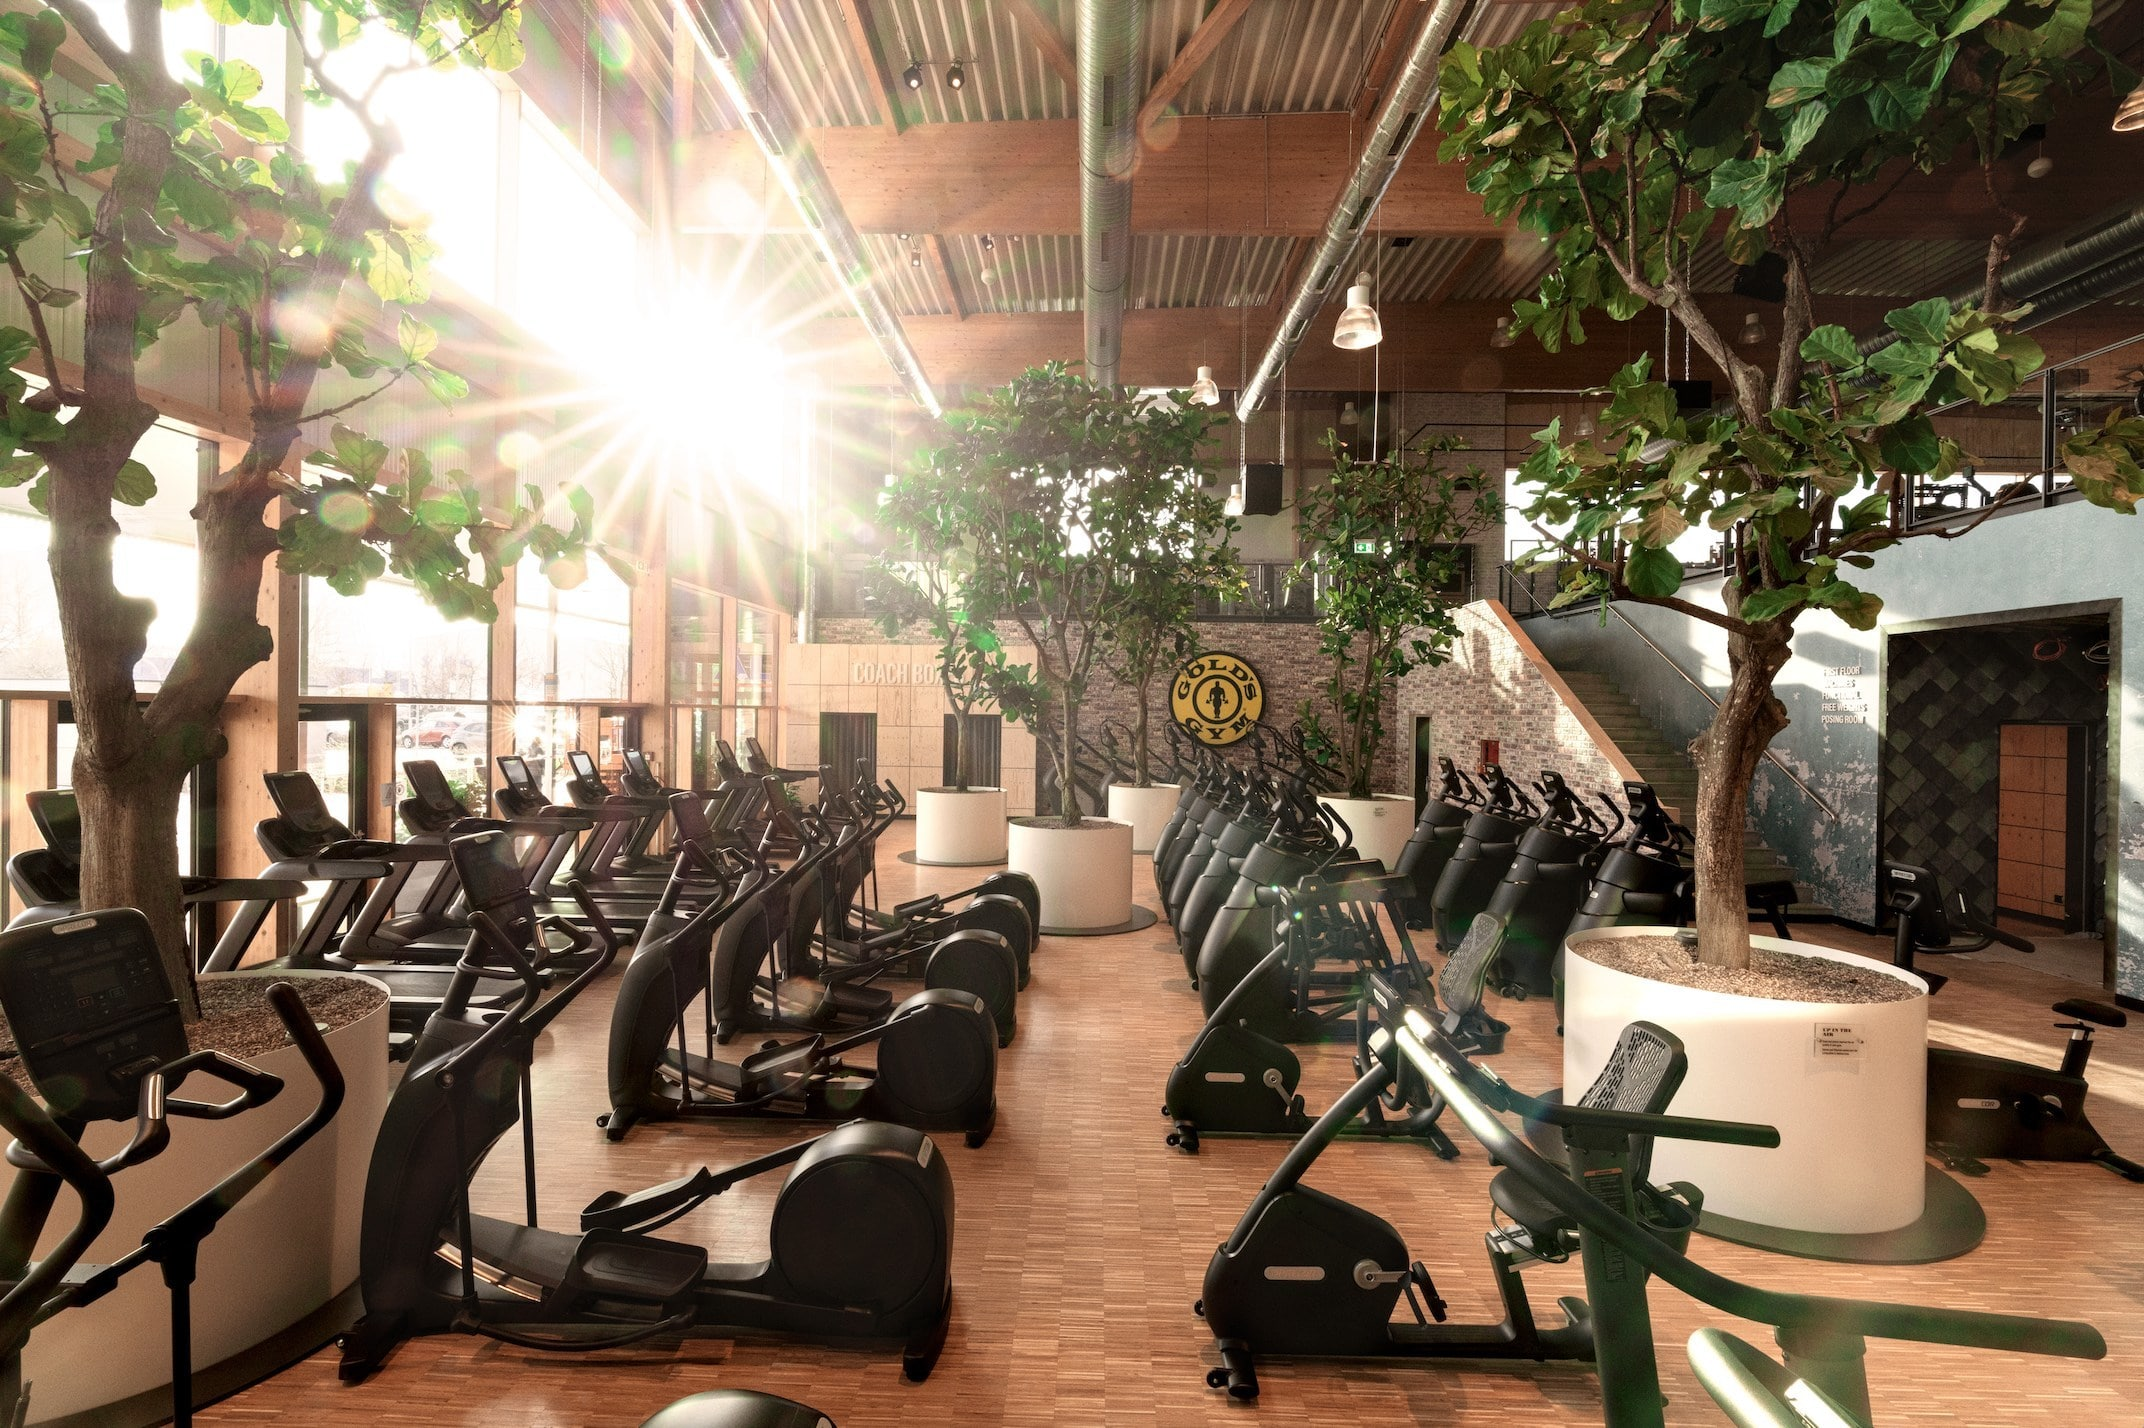 golds gym Berlin Flagship Campus